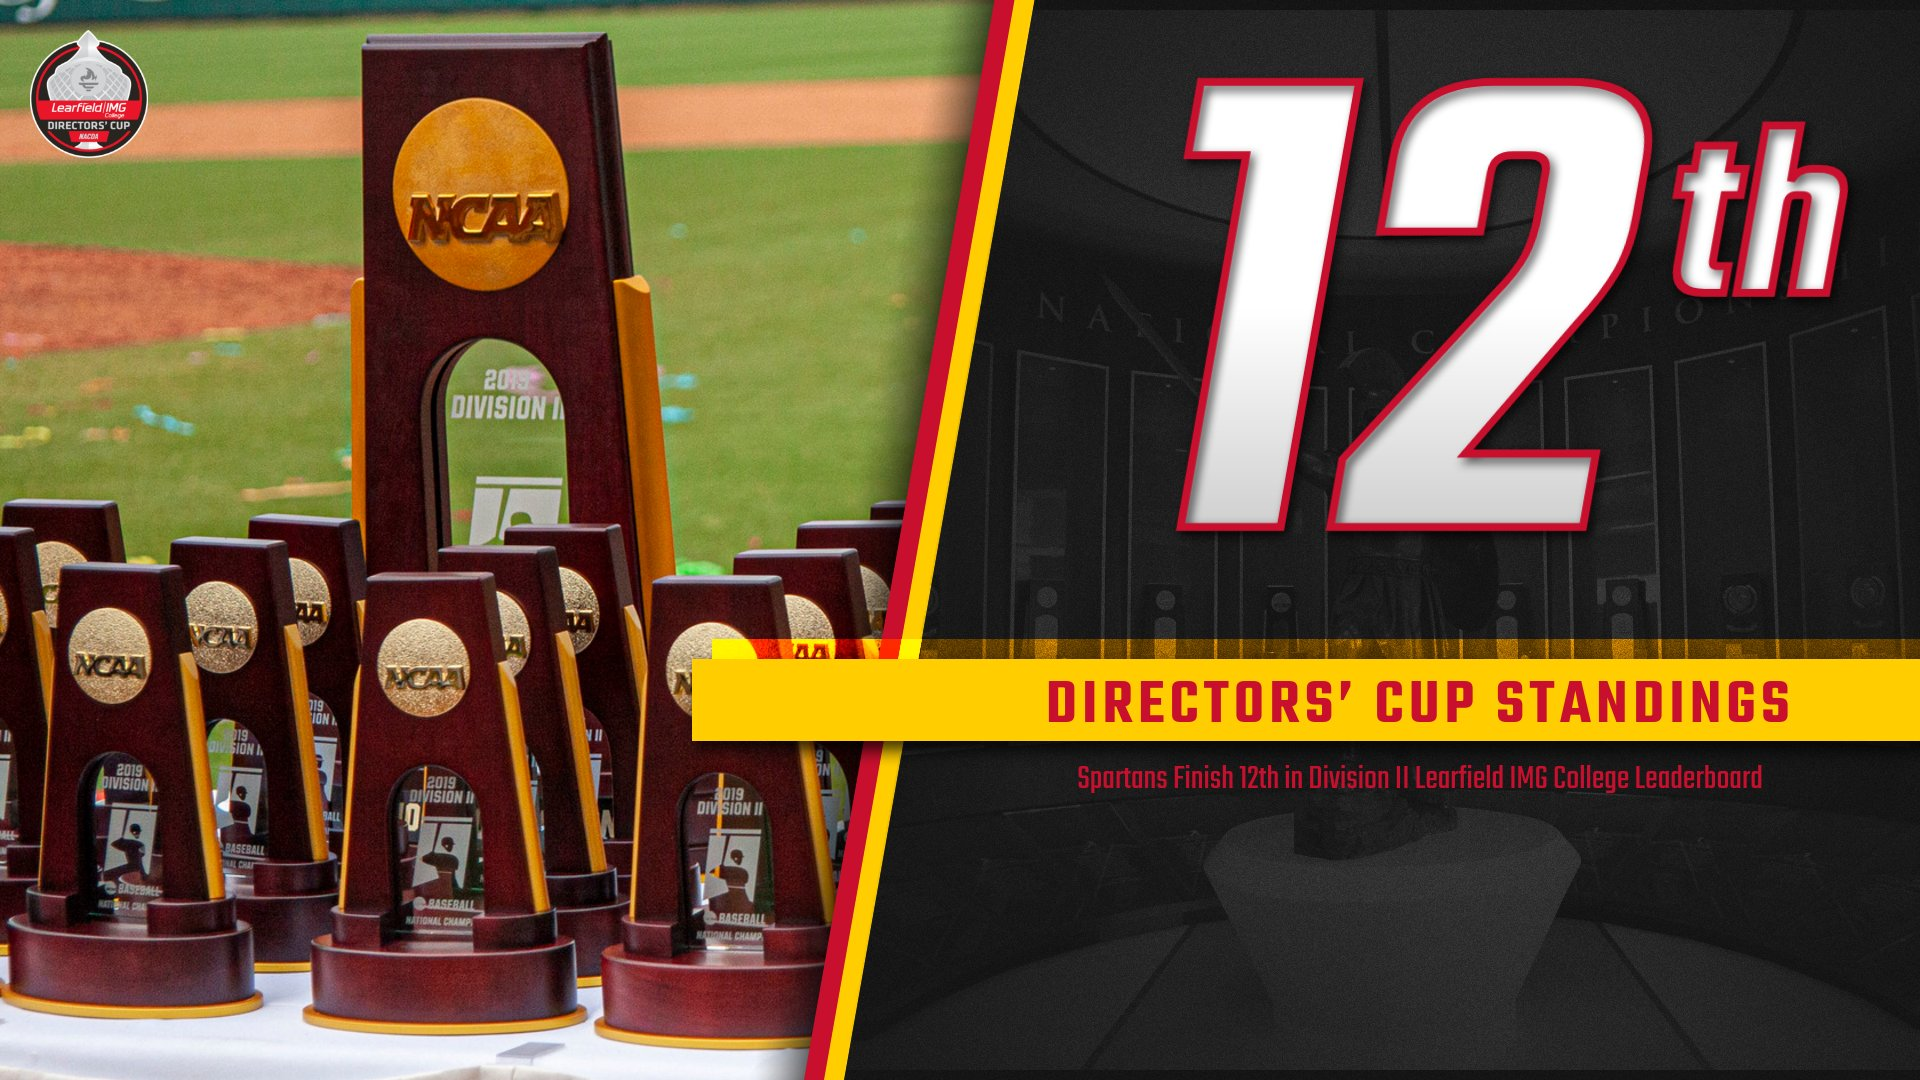 UT Athletics Finishes 12th in Directors' Cup Standings